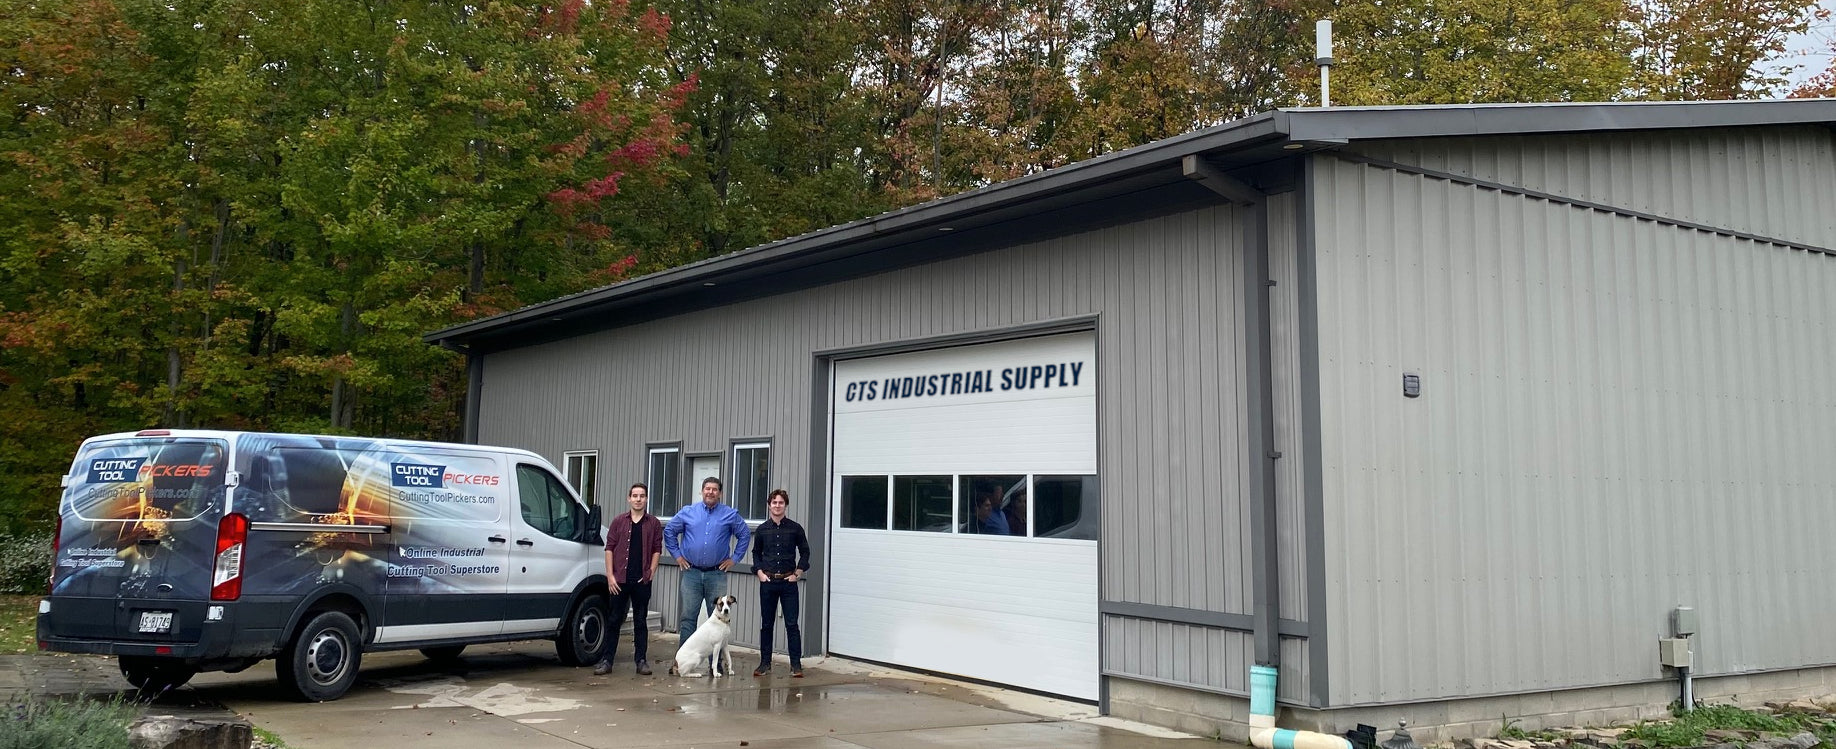 CTS Industrial Supply, Inc.